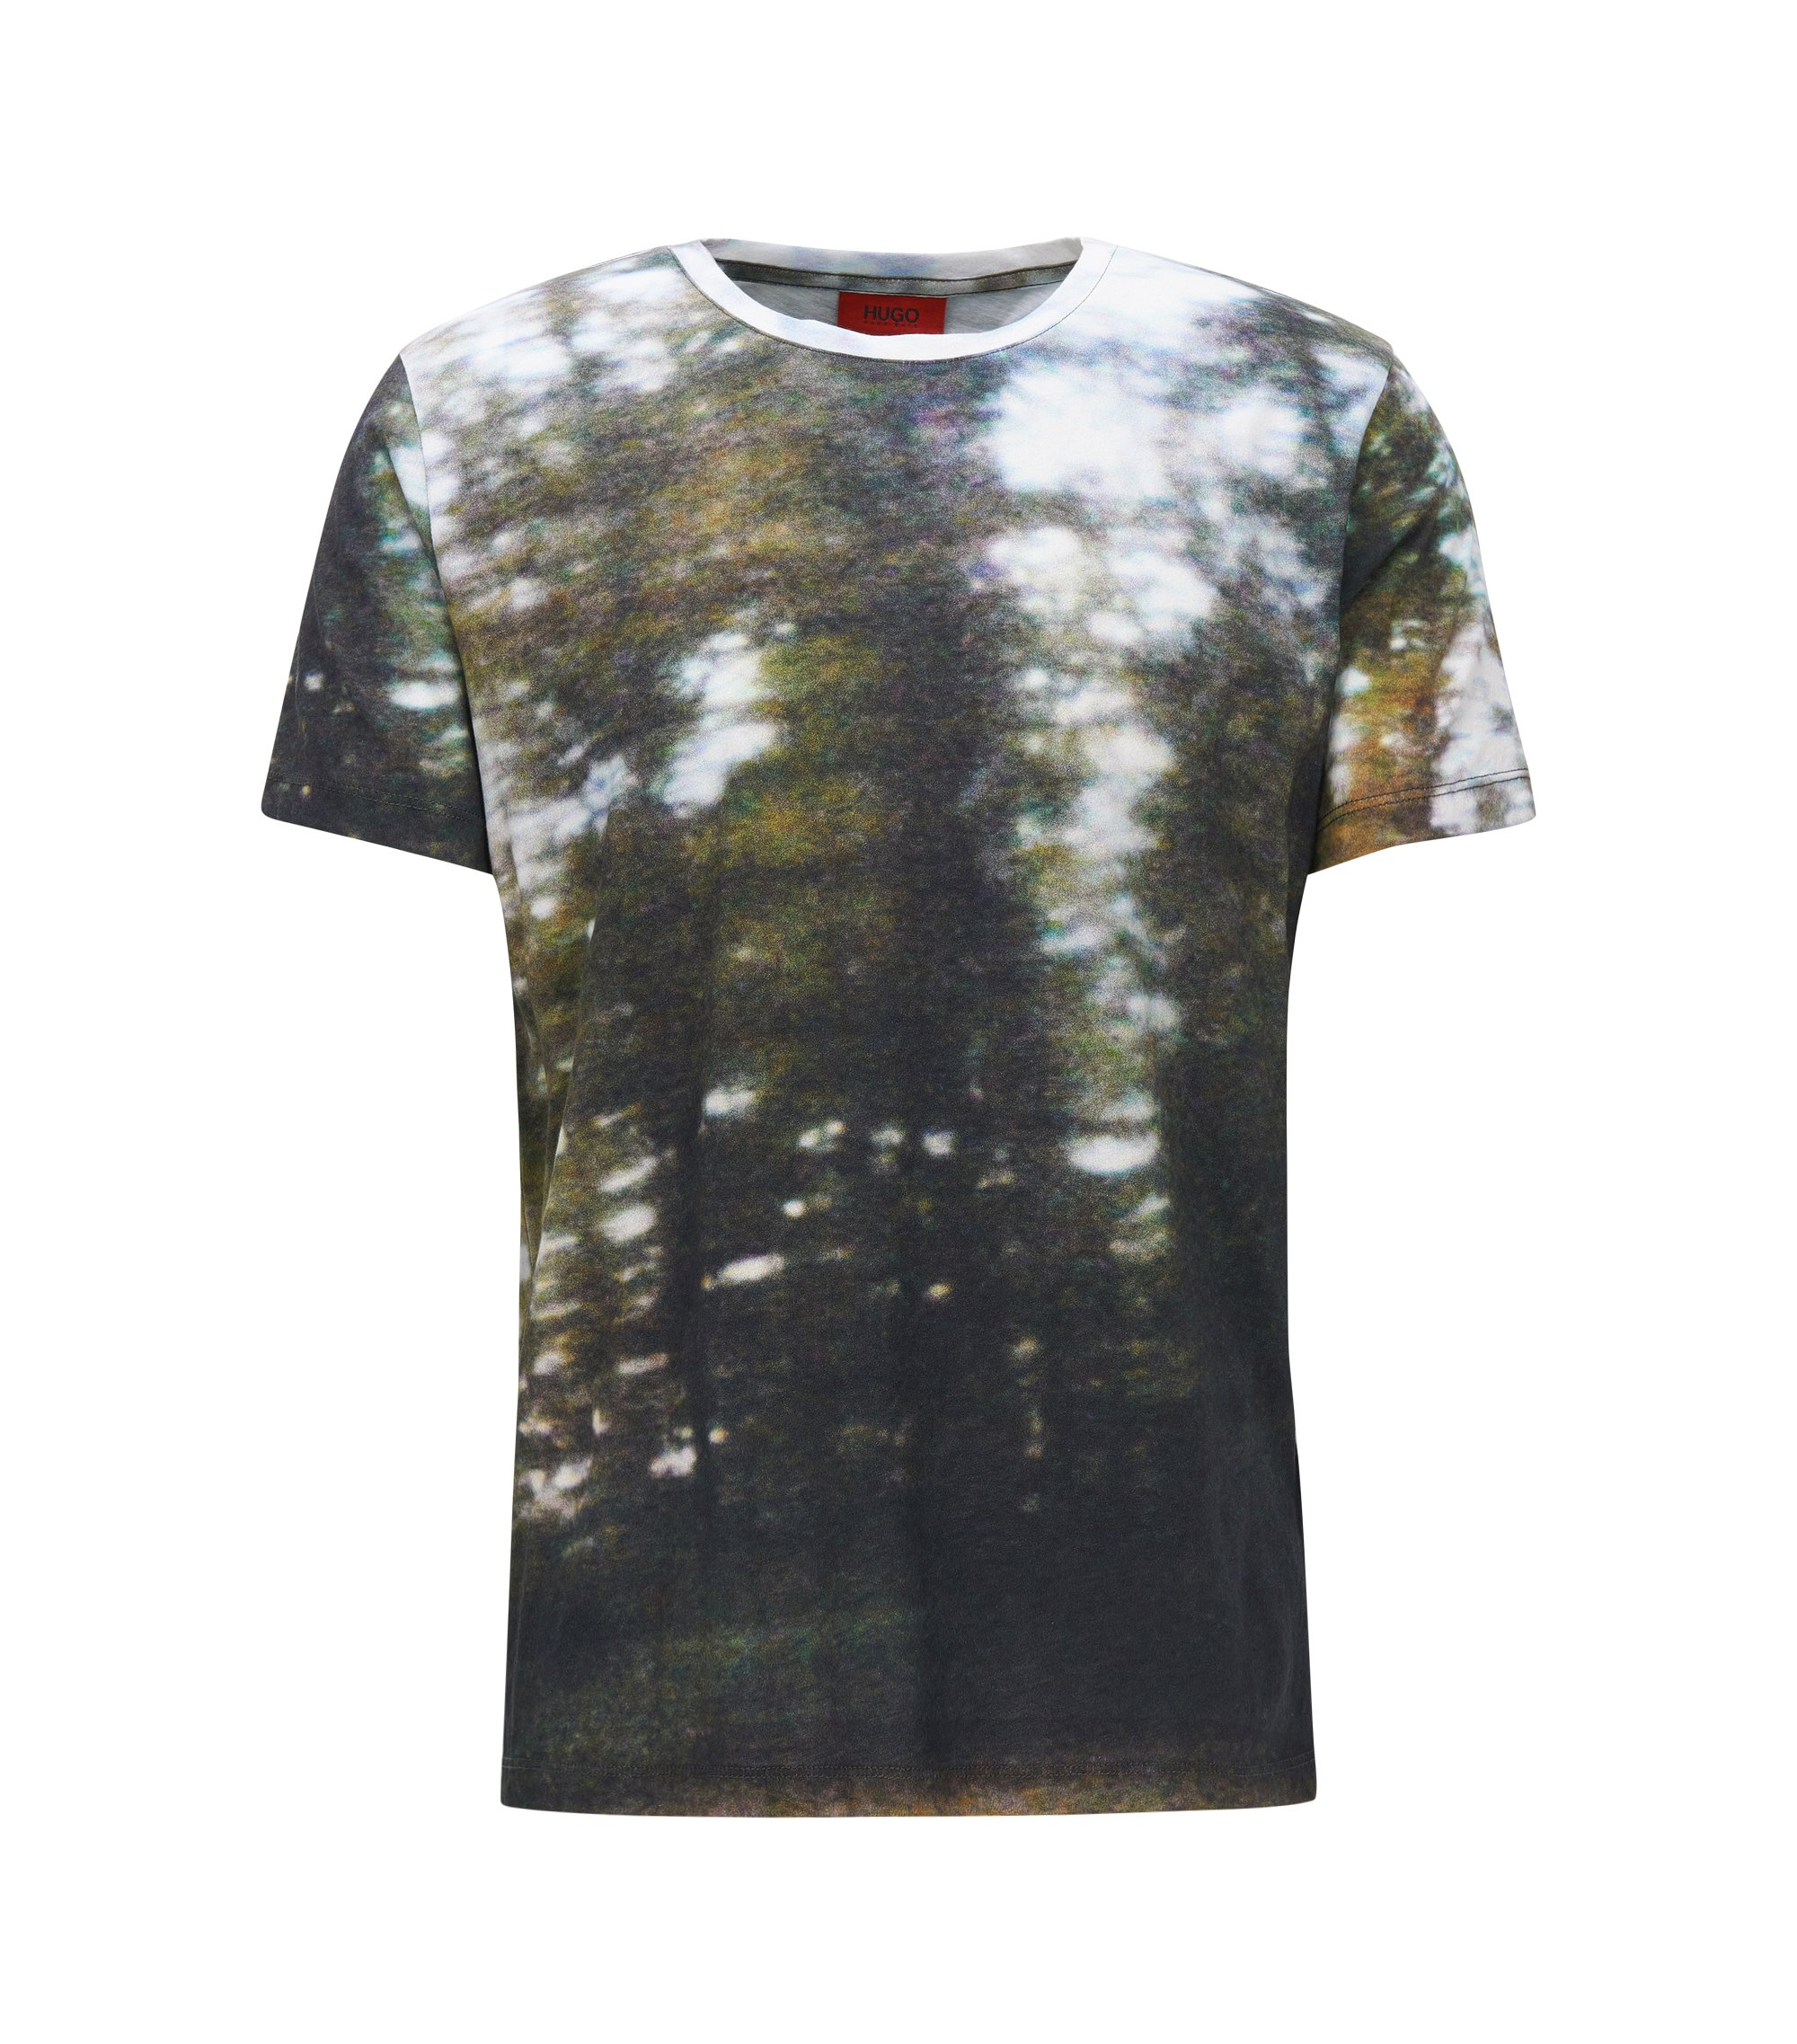 Cotton Digital-Print T-Shirt | Darview, Dark Green